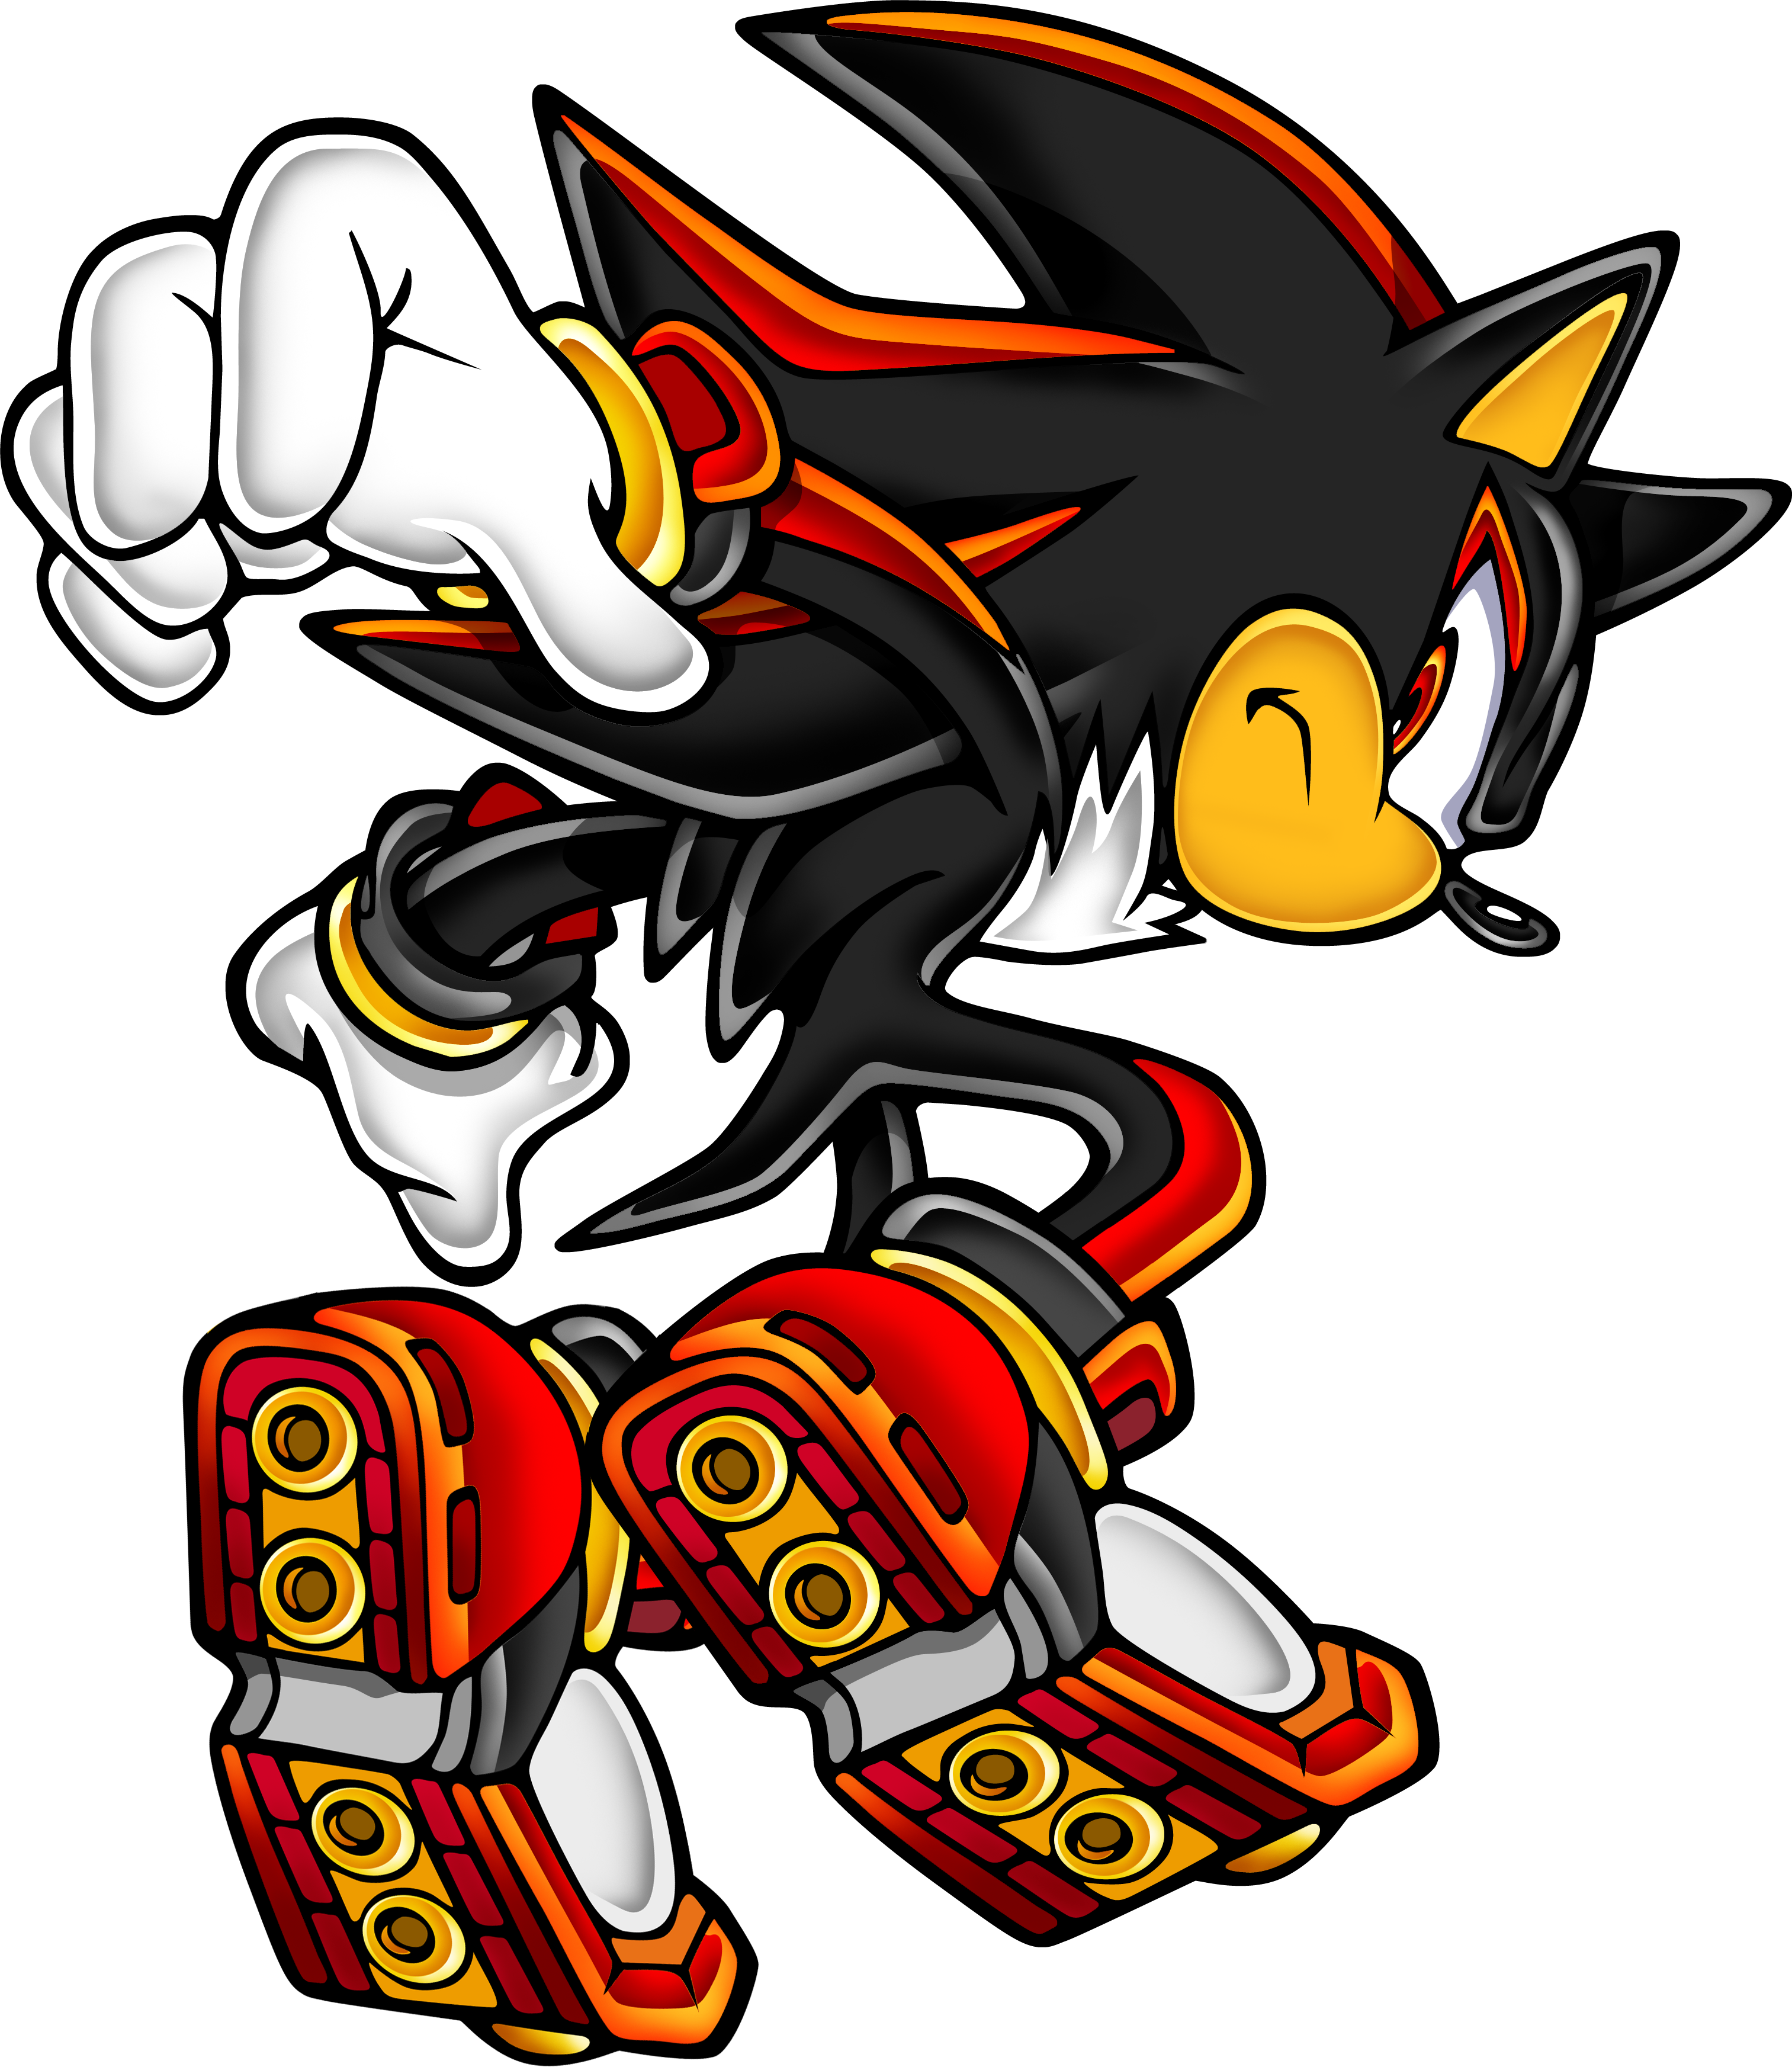 Sonic Adventure 2 Battle Signature Render Shadow The Hedgehog Gallery Sonic Scanf